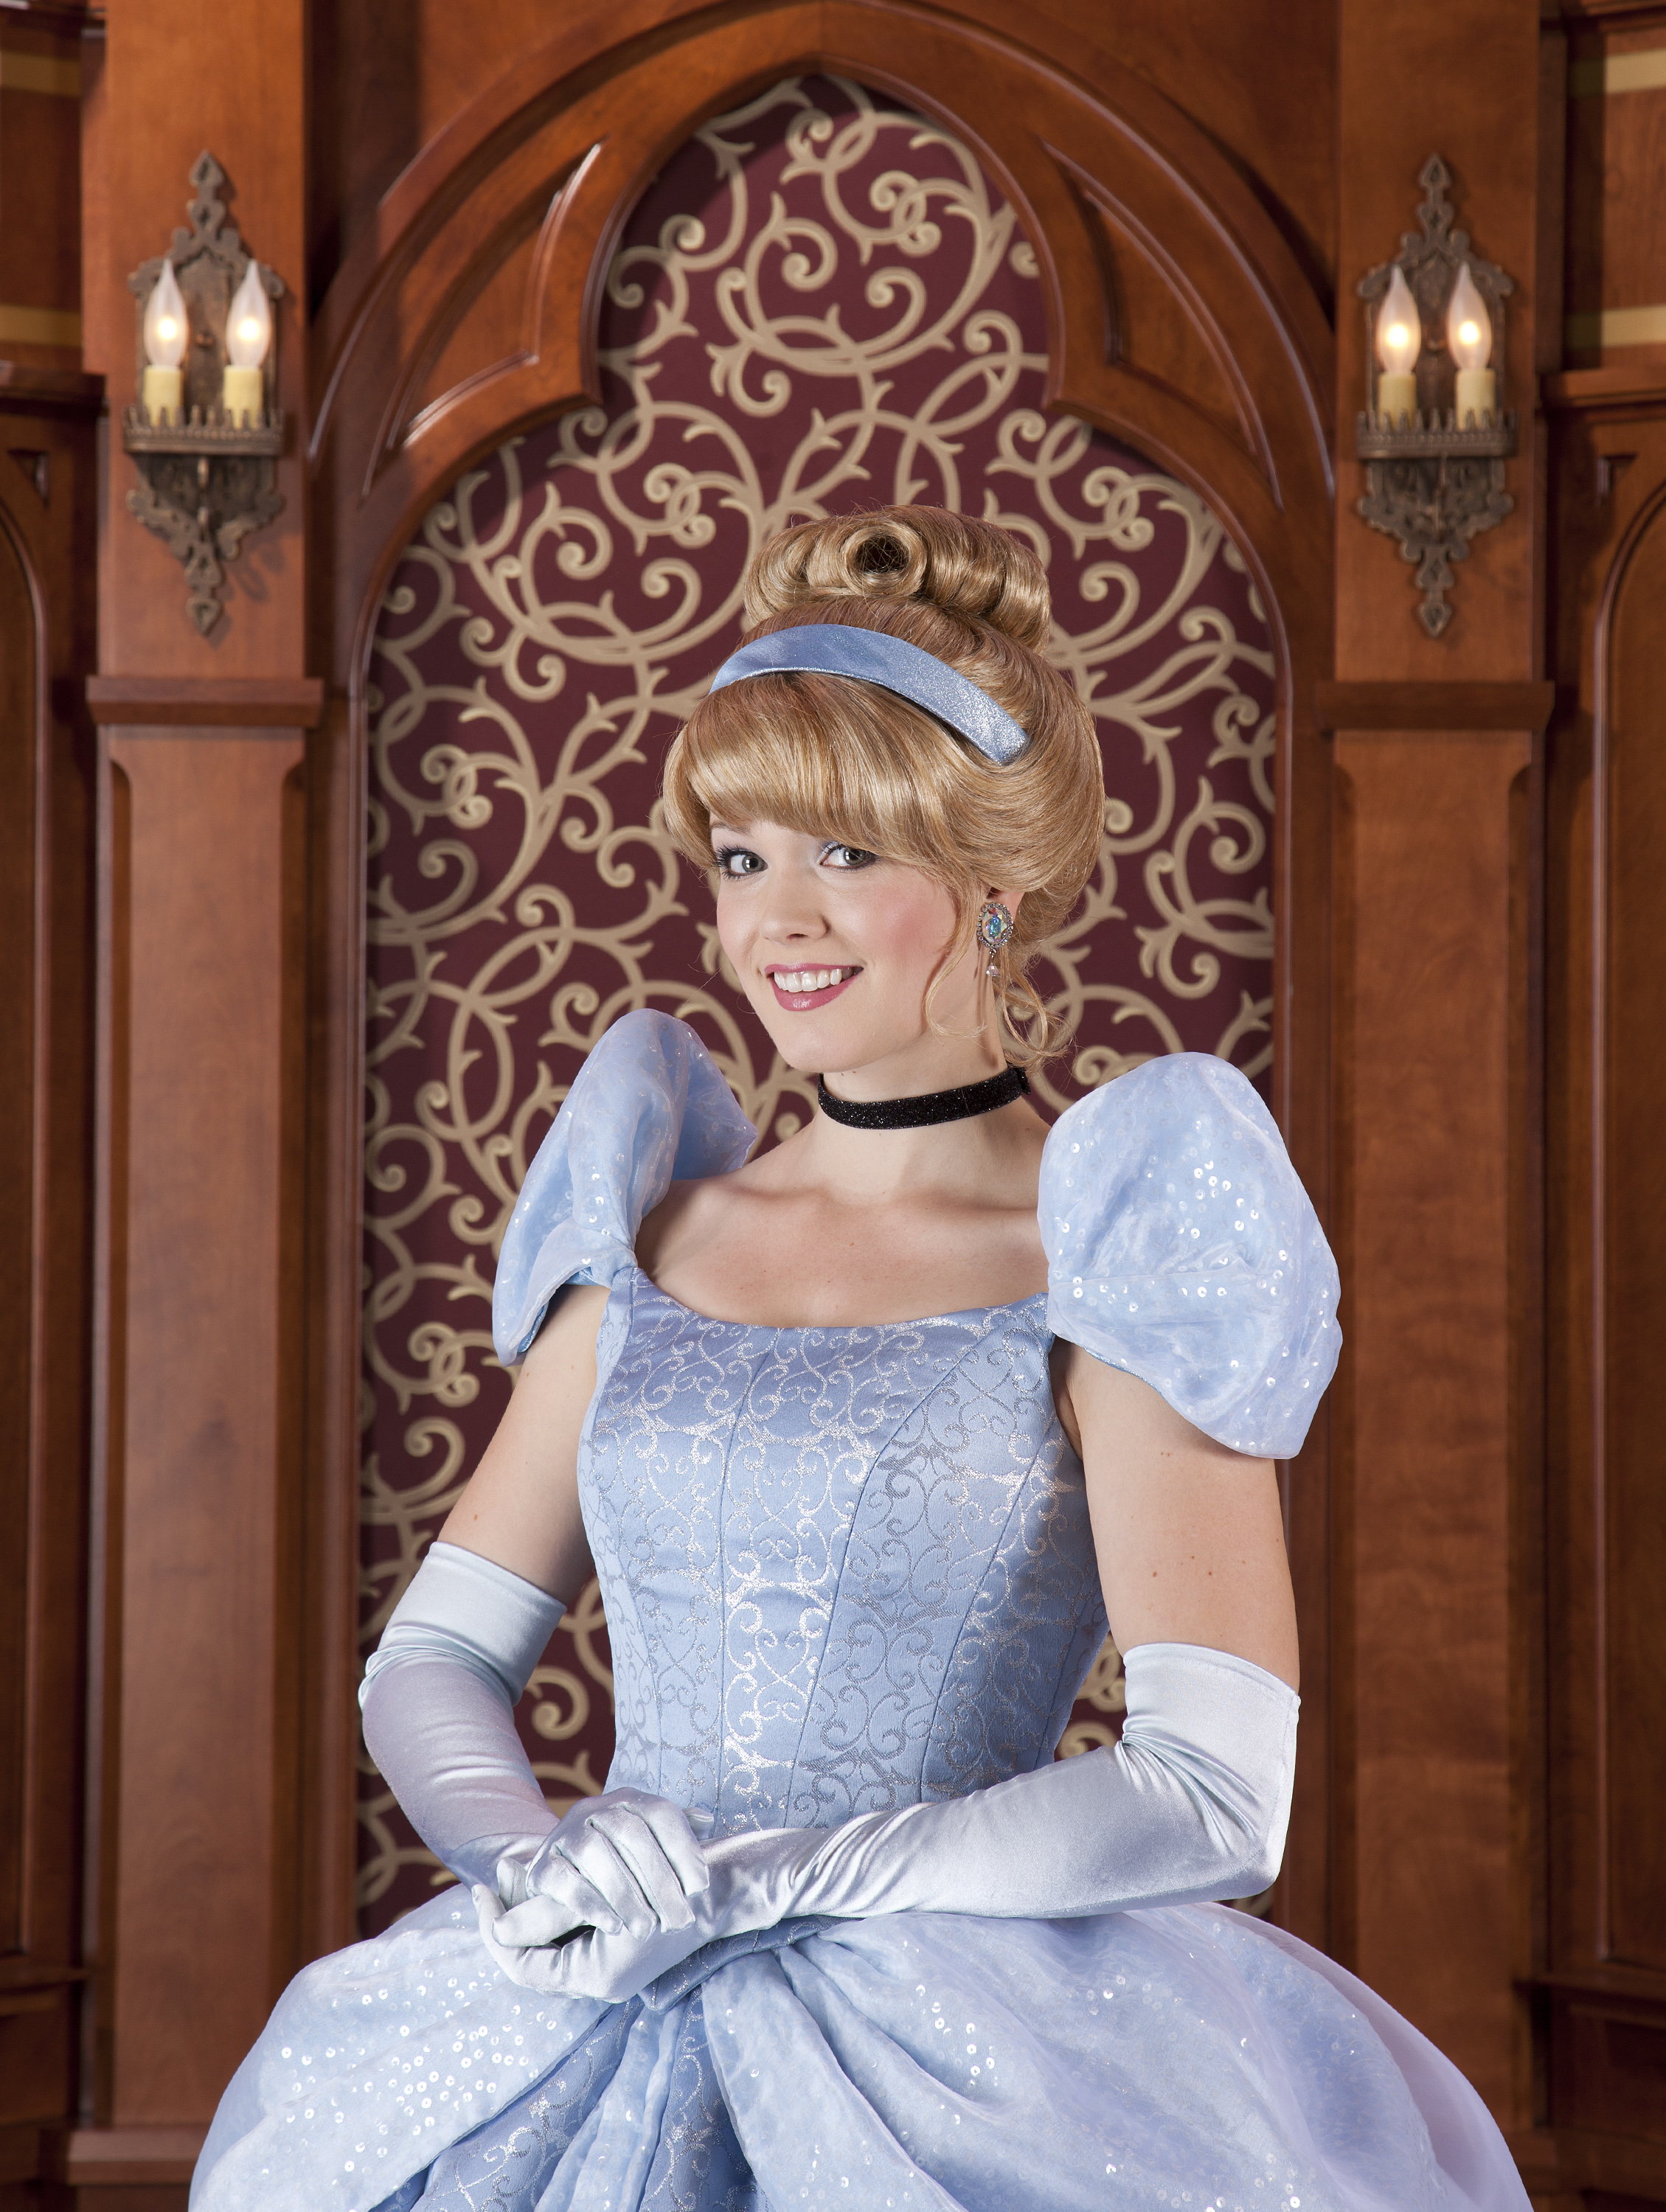 Fairy Tale Princesses A Disneyland Resort Tradition Offers Guests